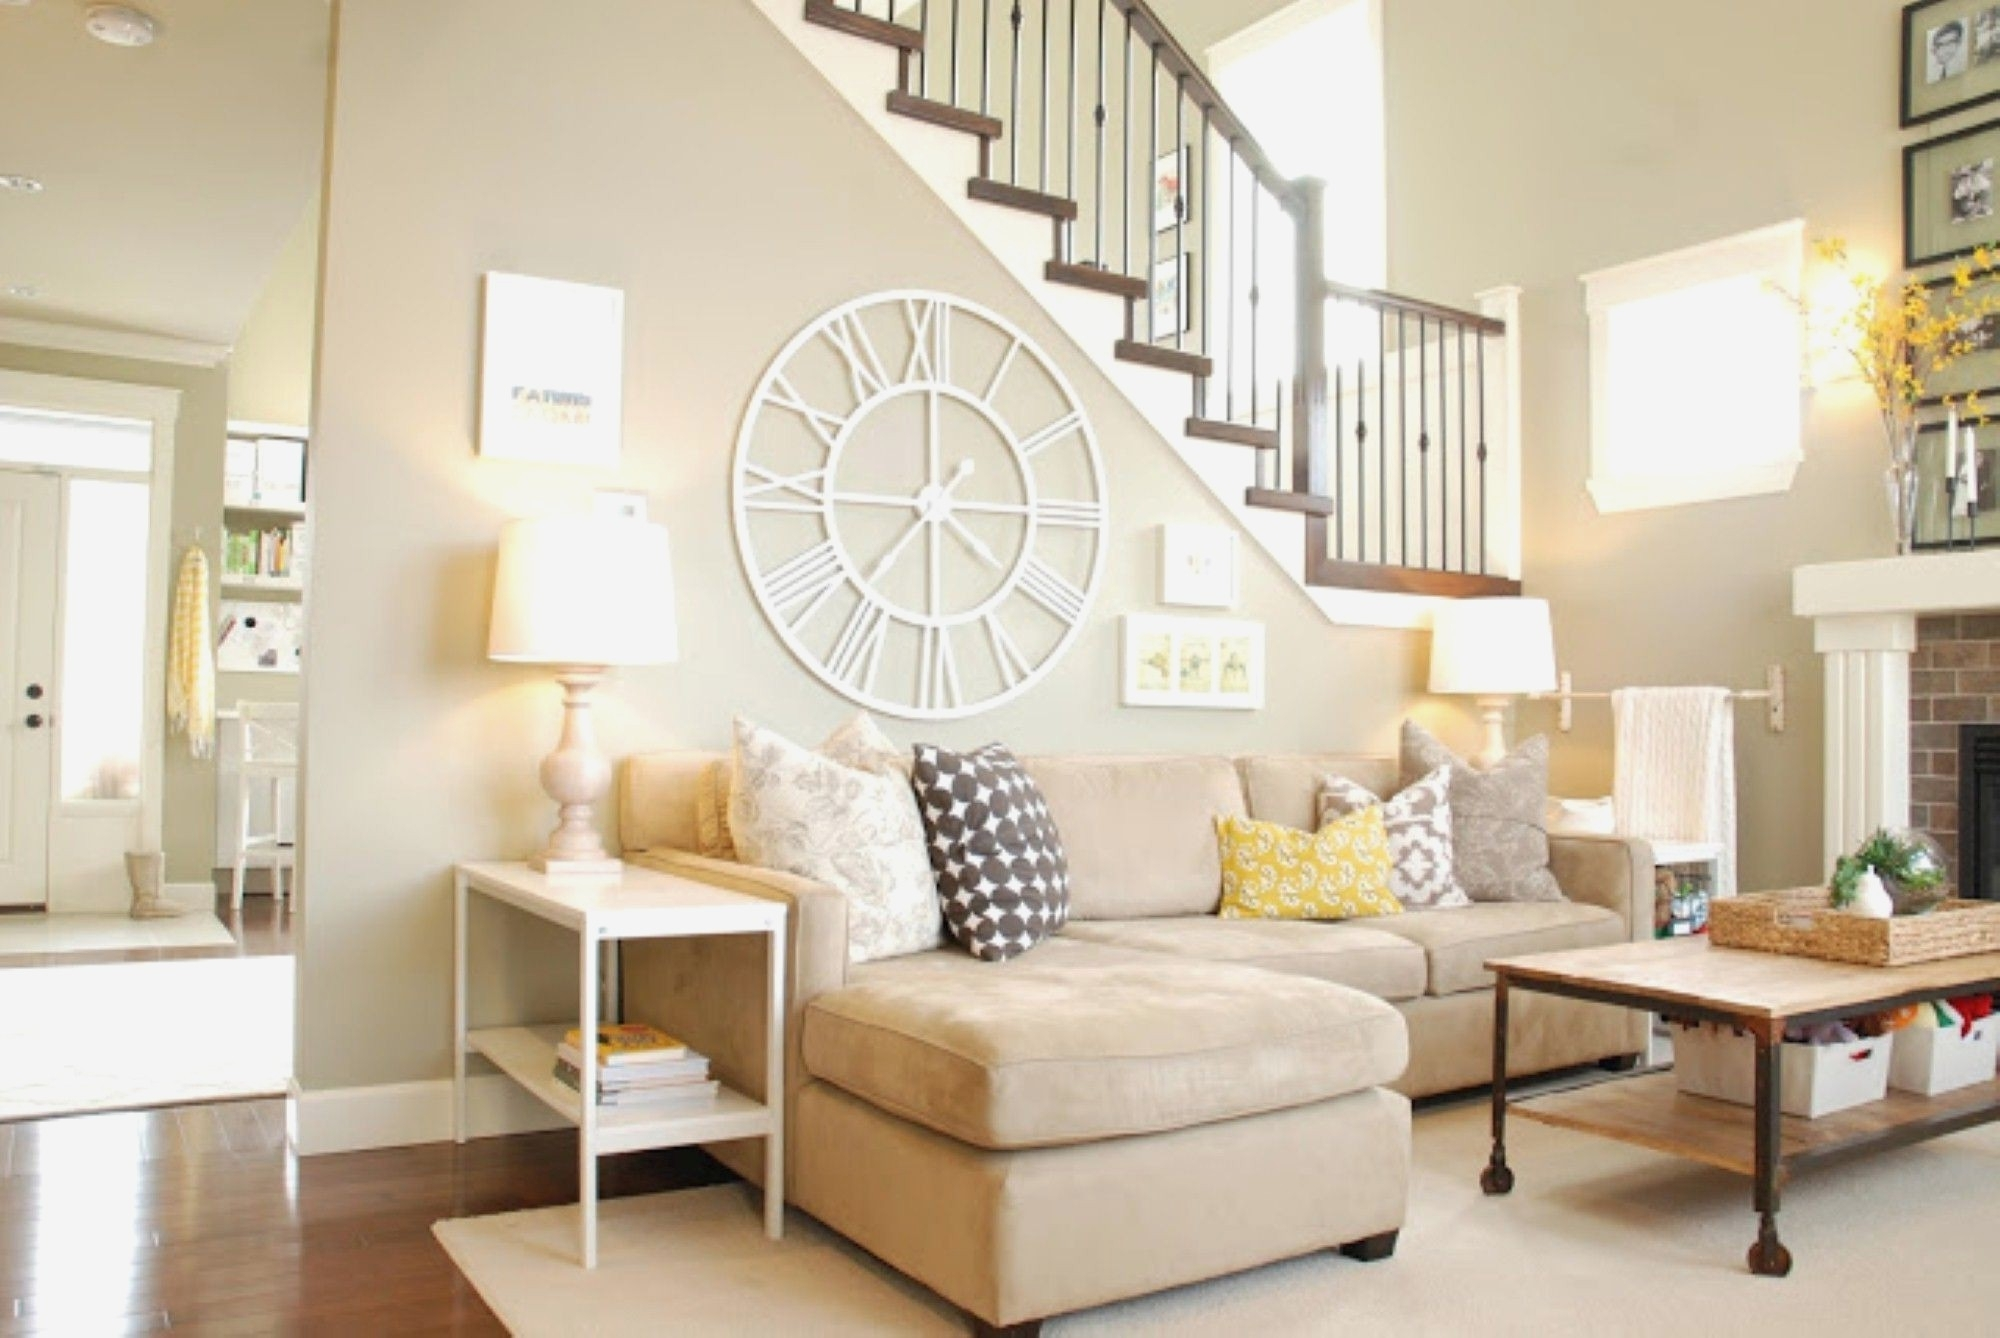 Neutral Living Room With Newest Neutral Color Wall Accents (Gallery 13 of 15)